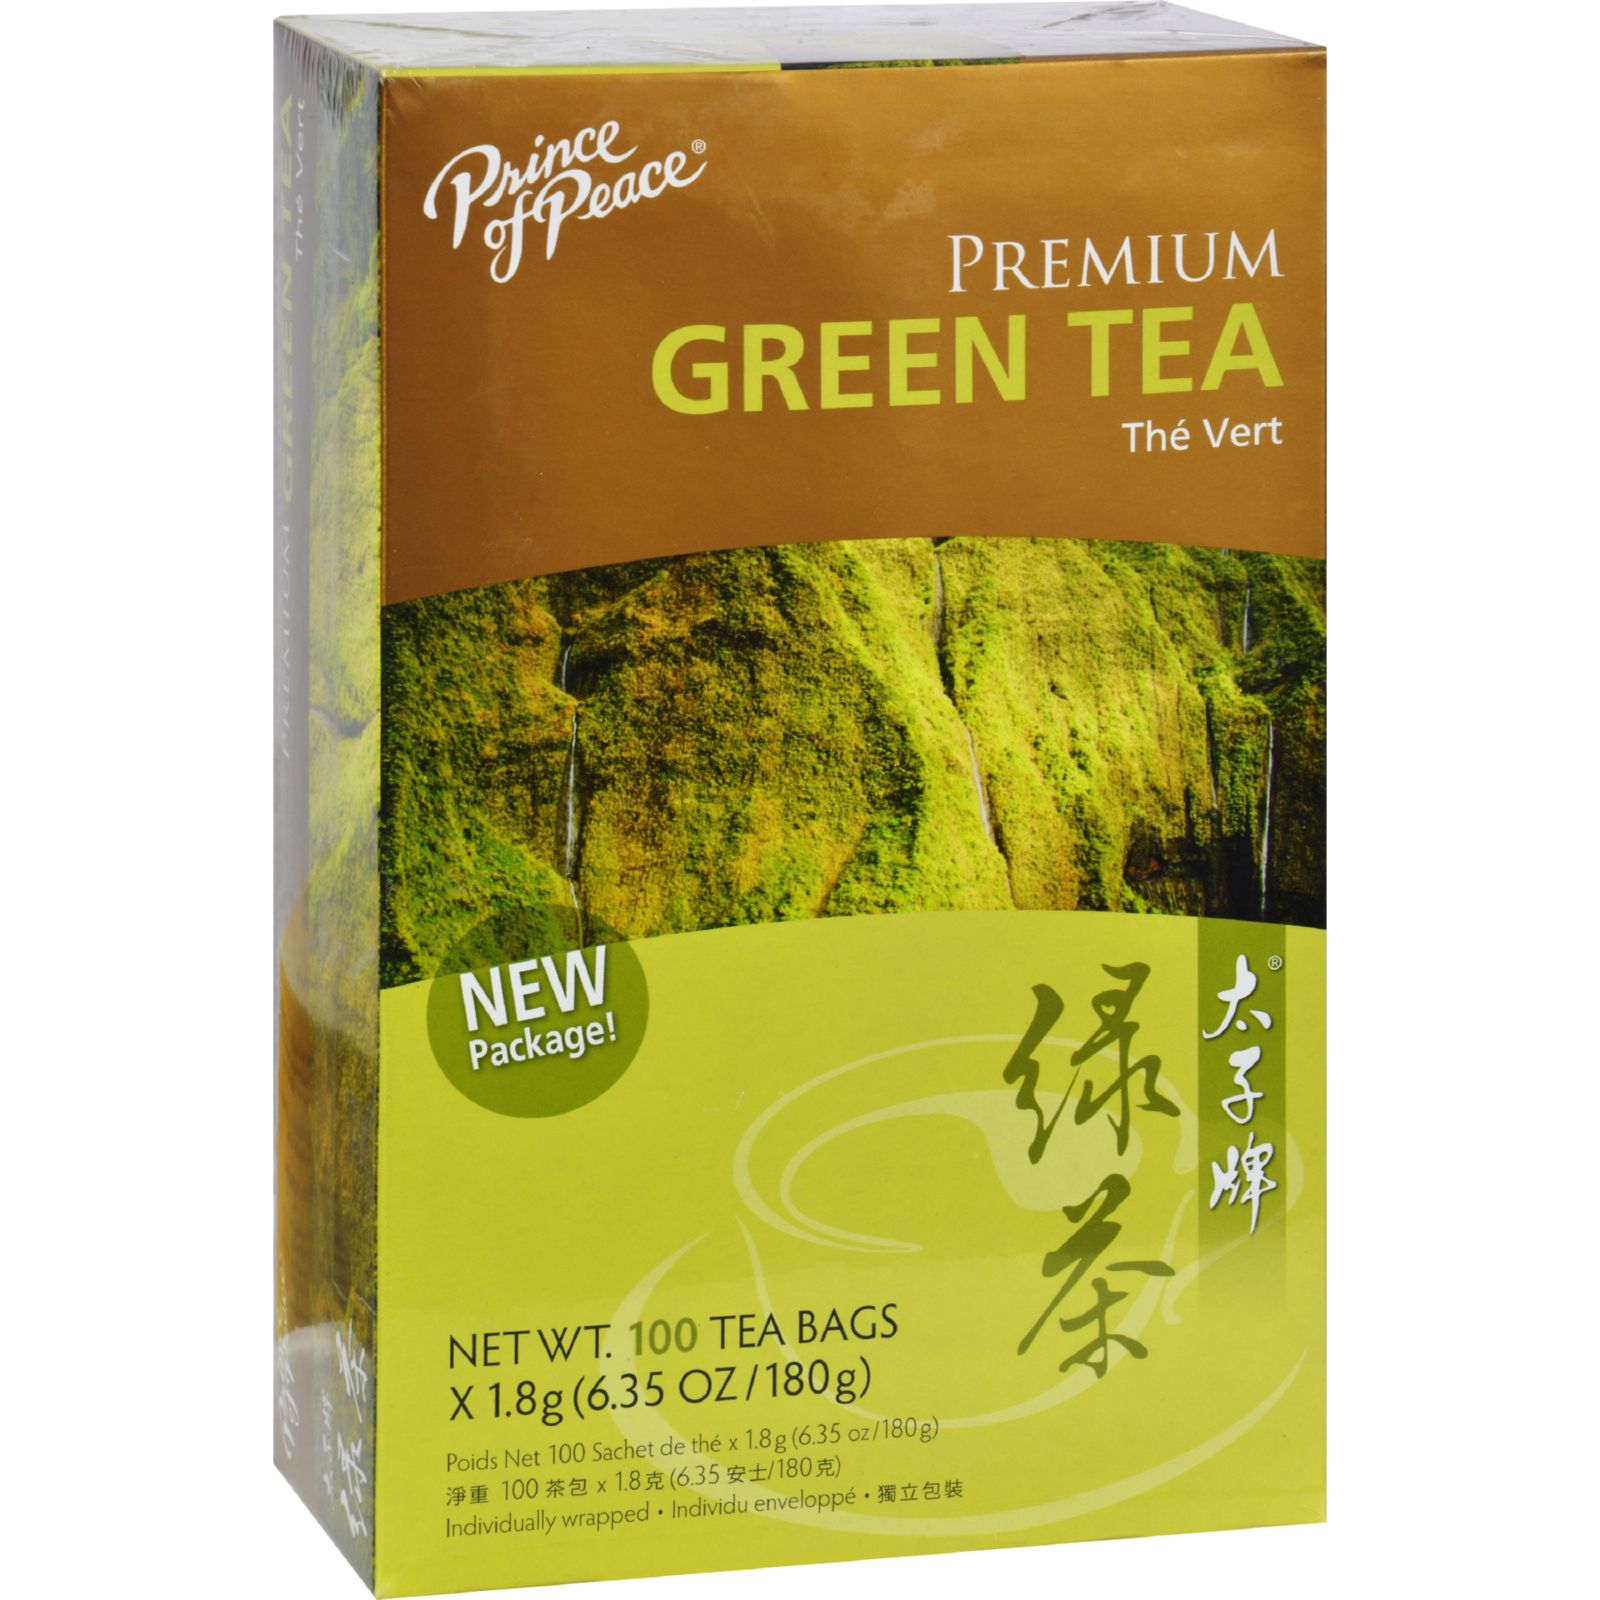 Prince of Peace Premium Green Tea - 100 Tea Bags